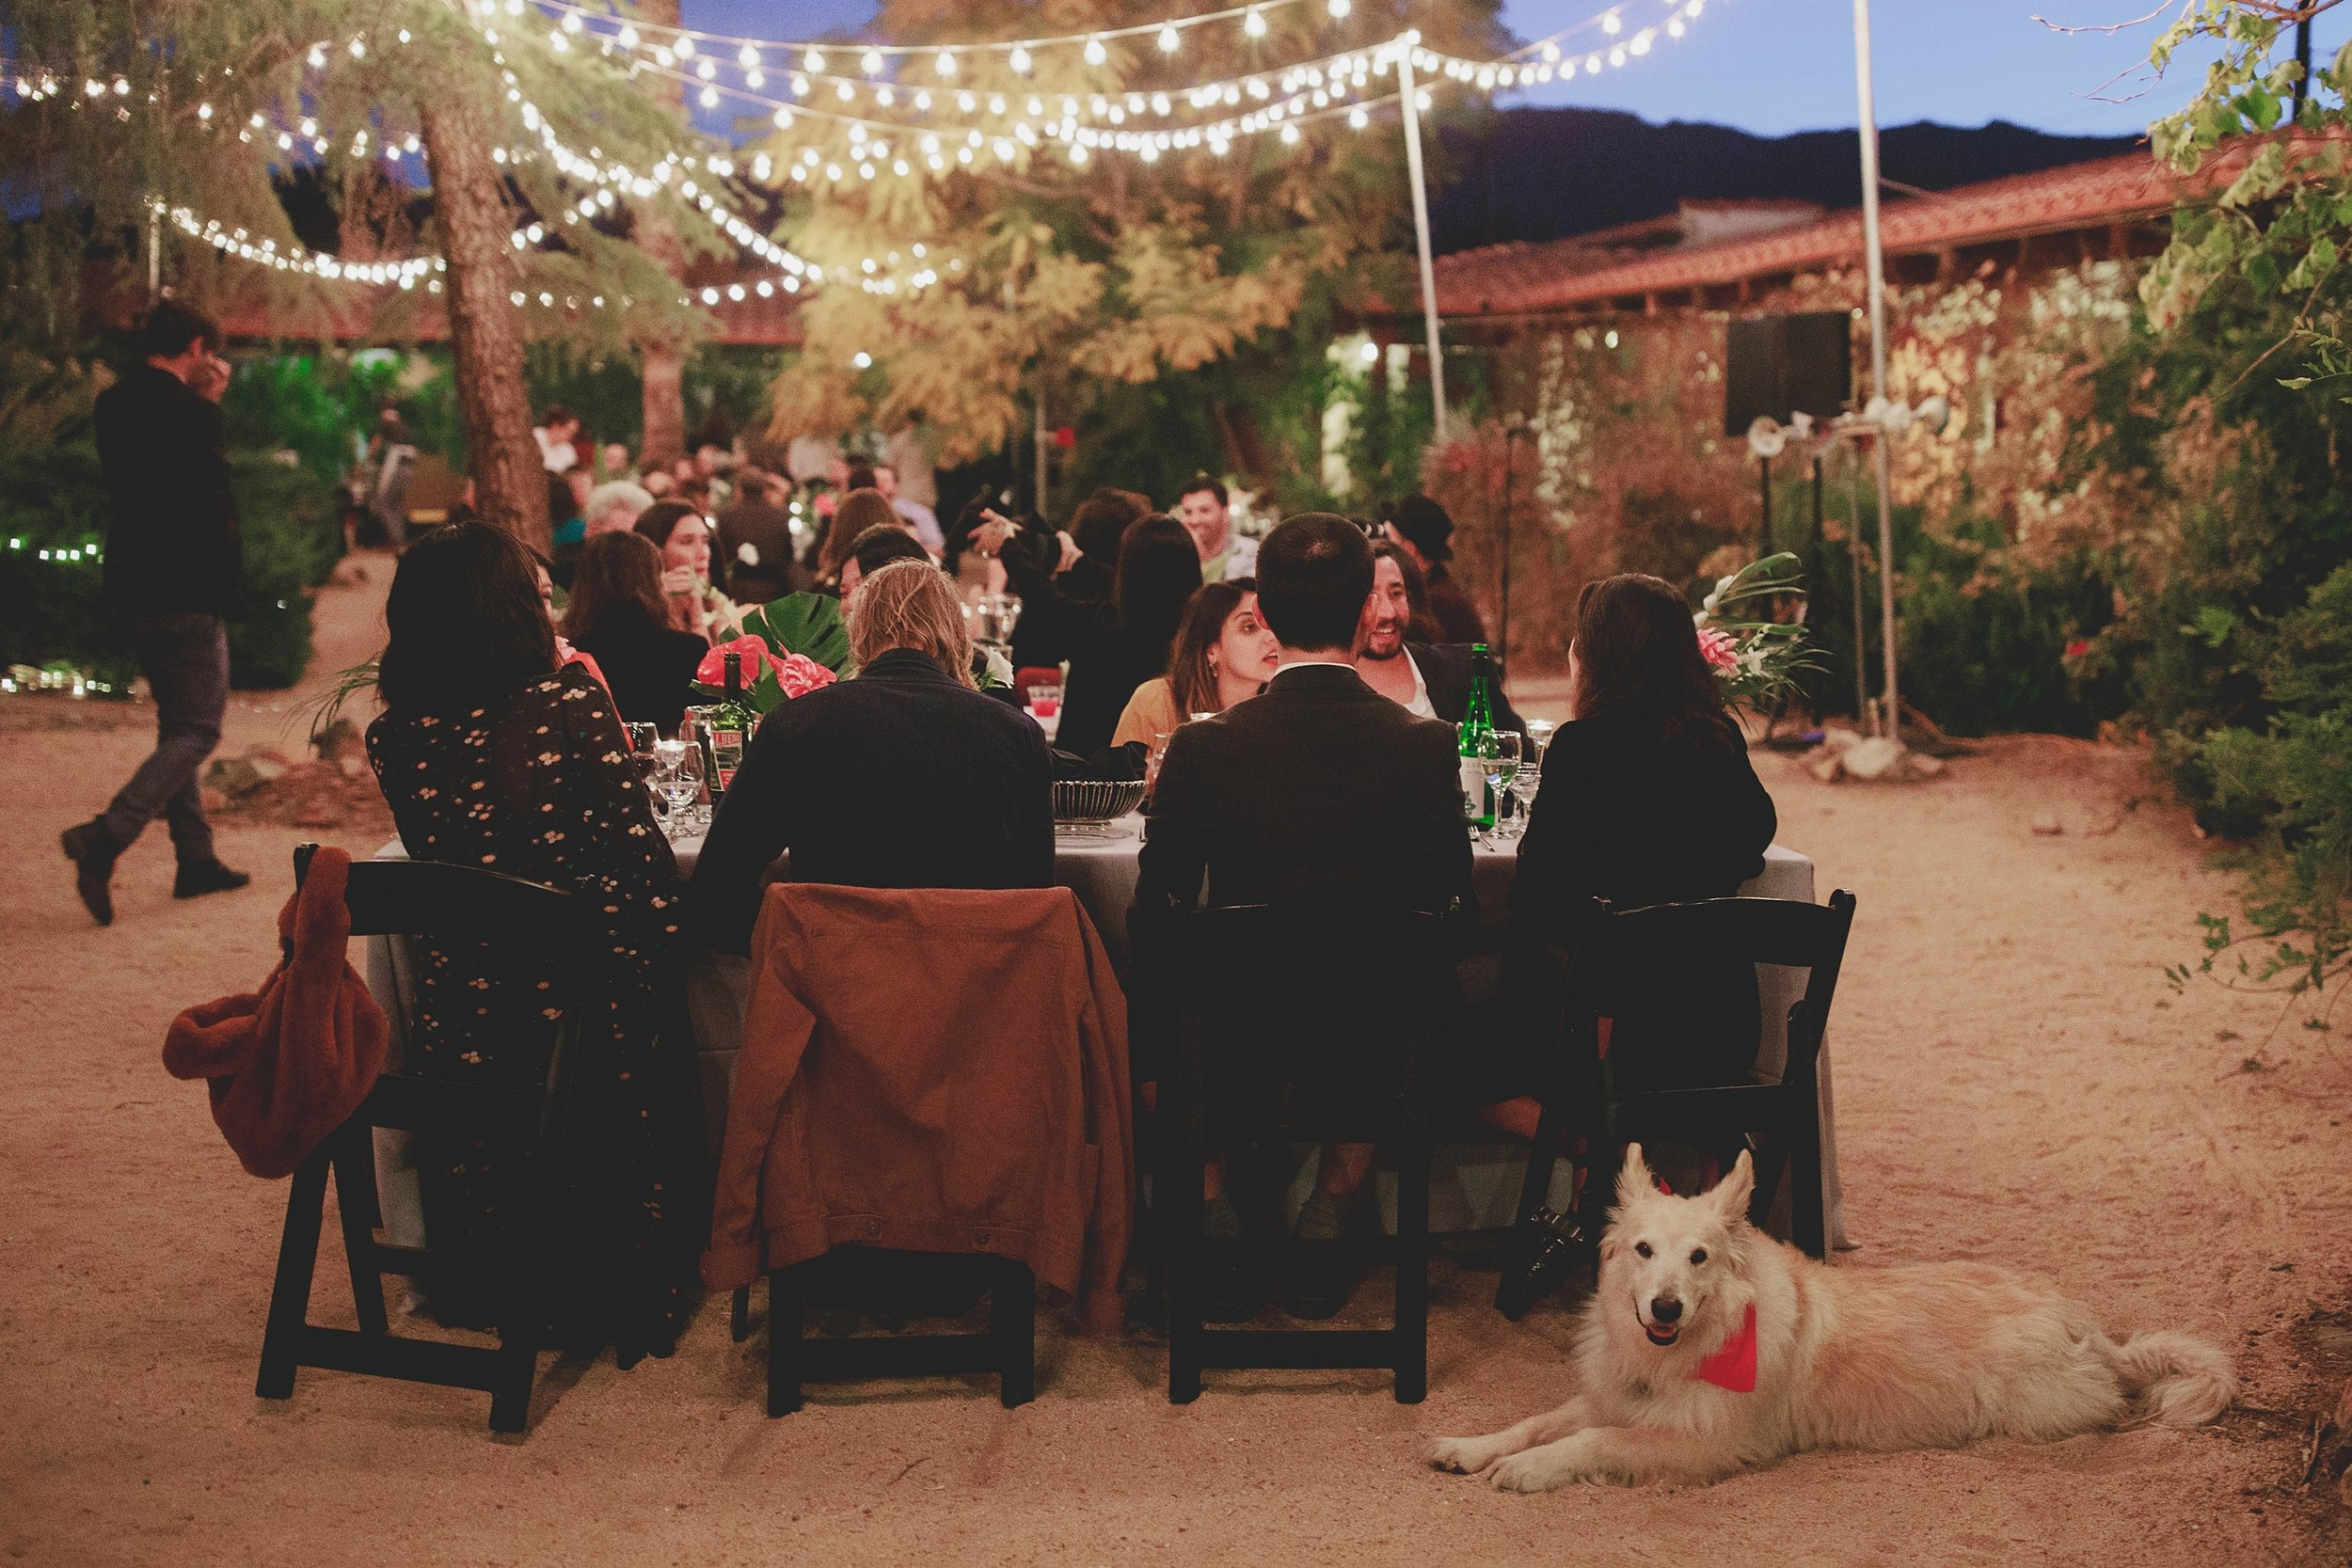 amanda_vanvels_joshua_tree_inn_wedding_164.jpg